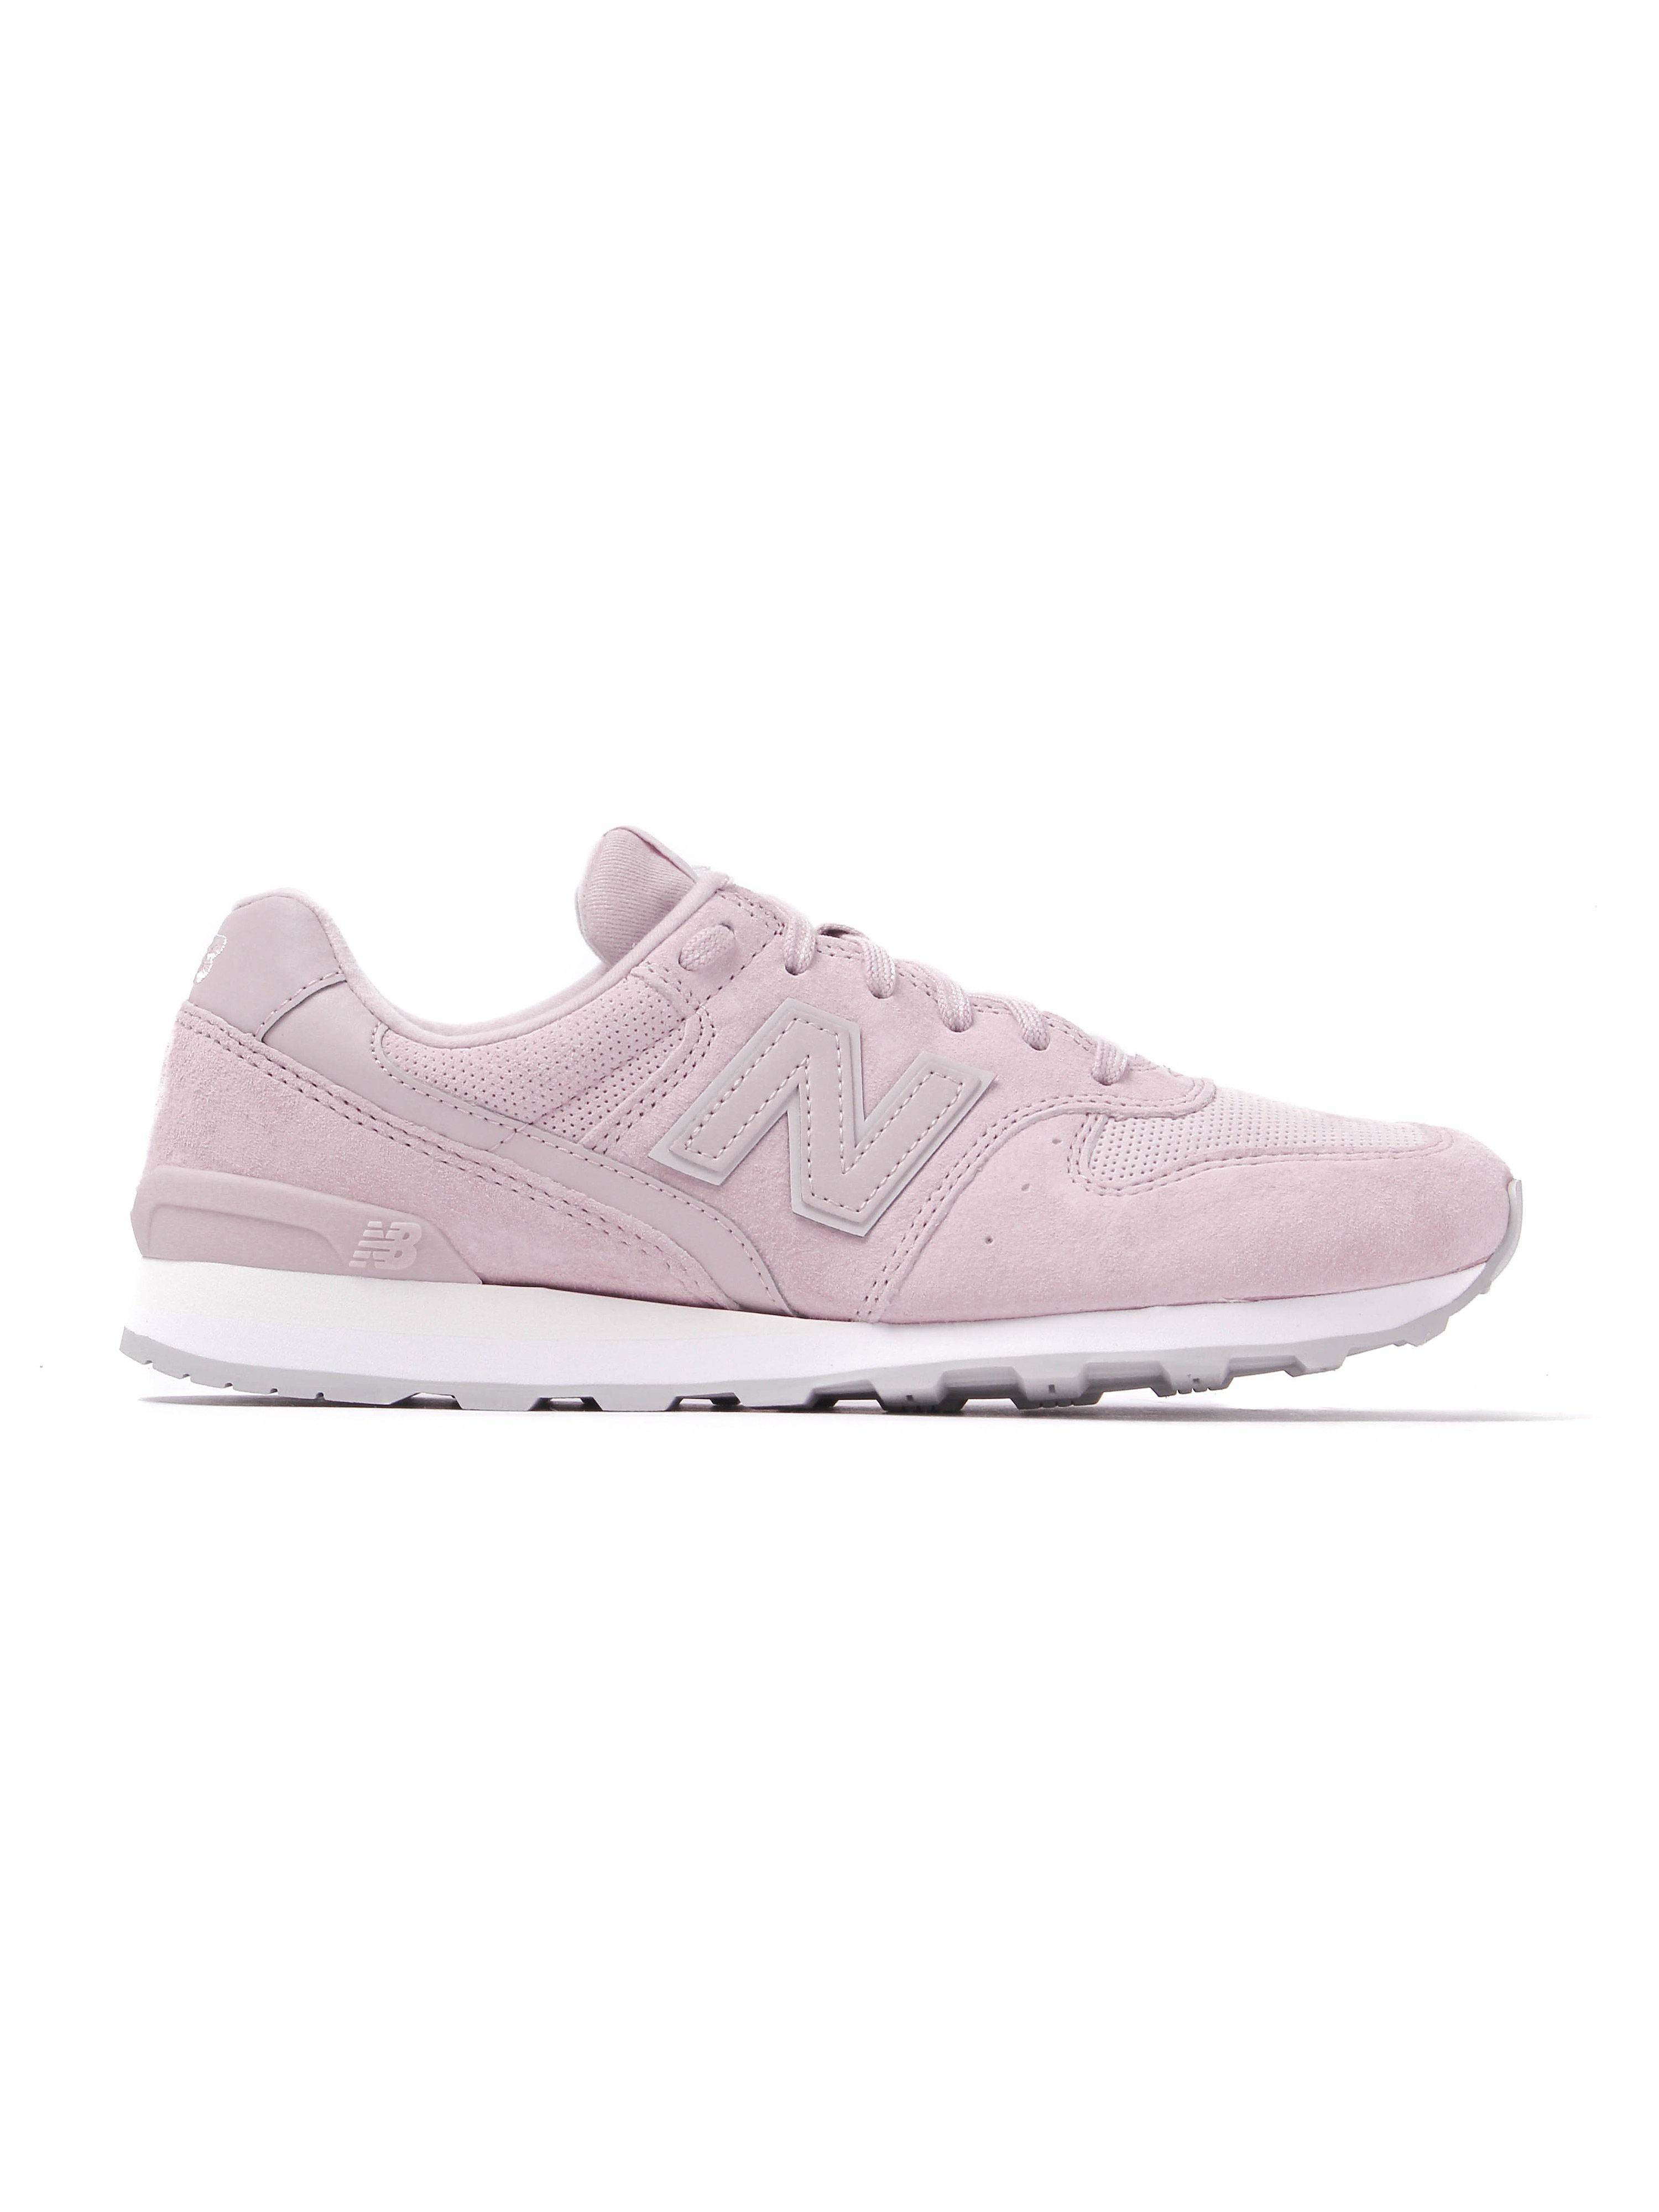 New Balance Women's 996 Trainer's - Pink Suede